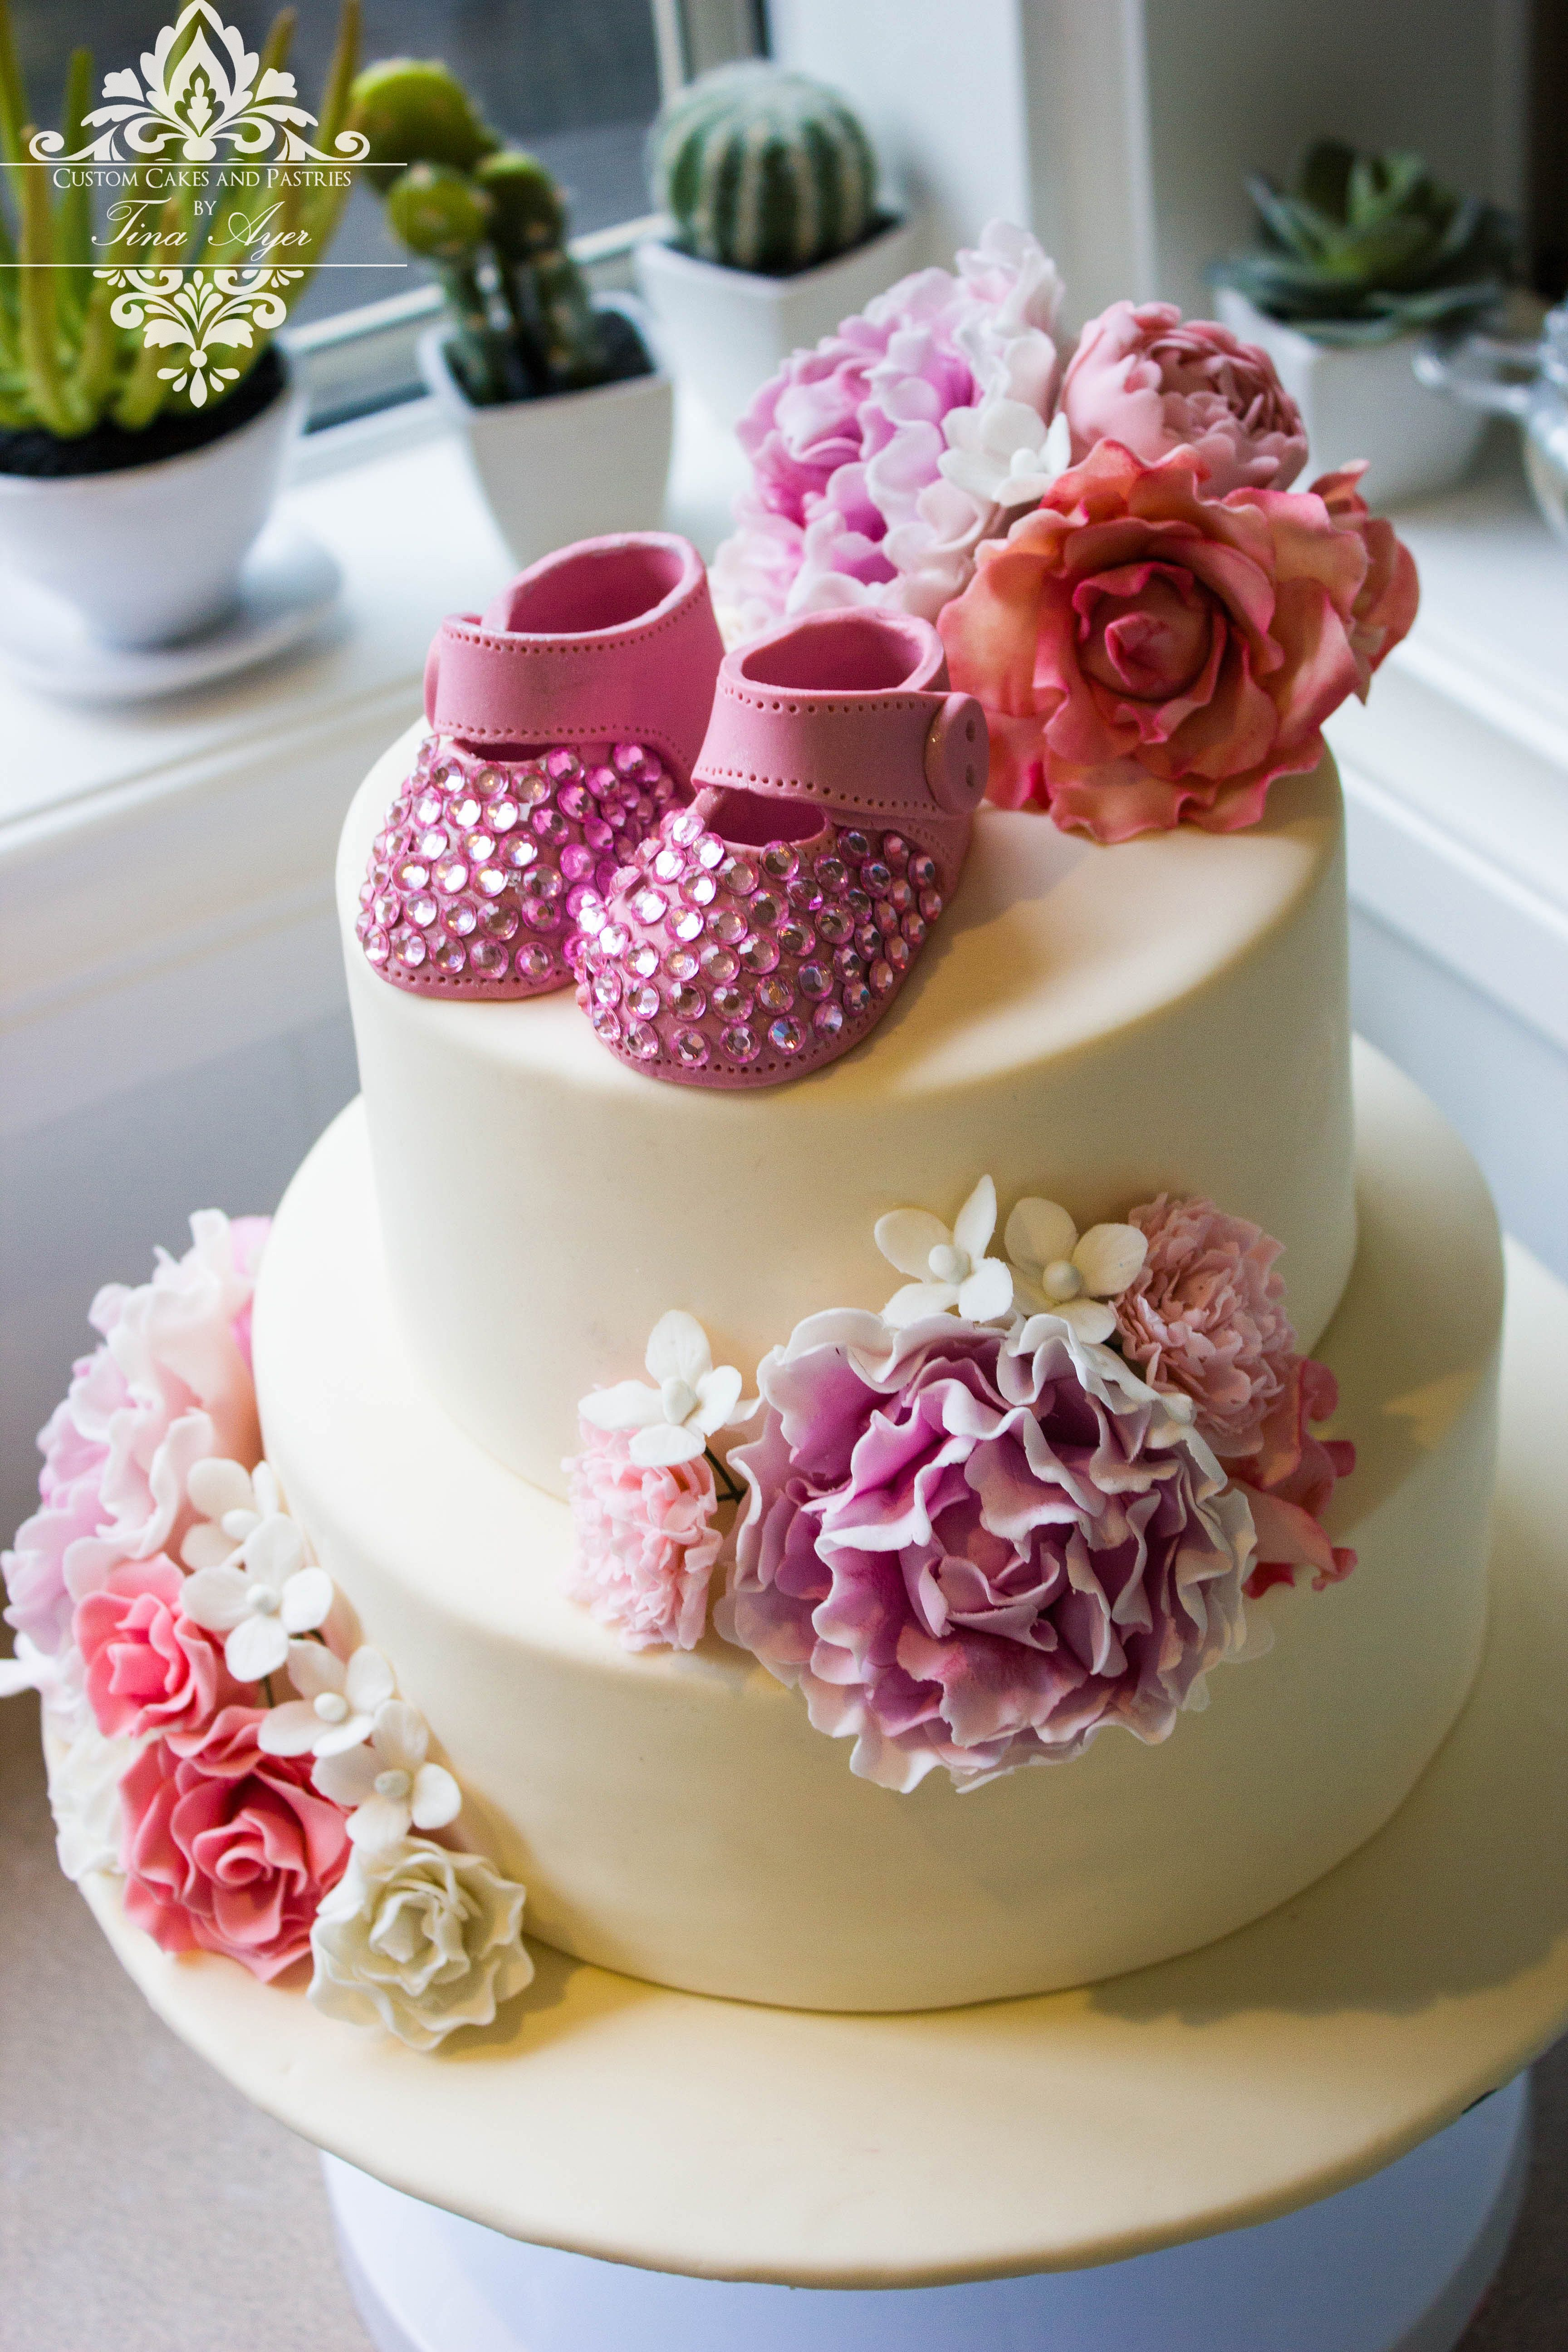 Cream wedding cake with flowers custom cakes and pastries by tina